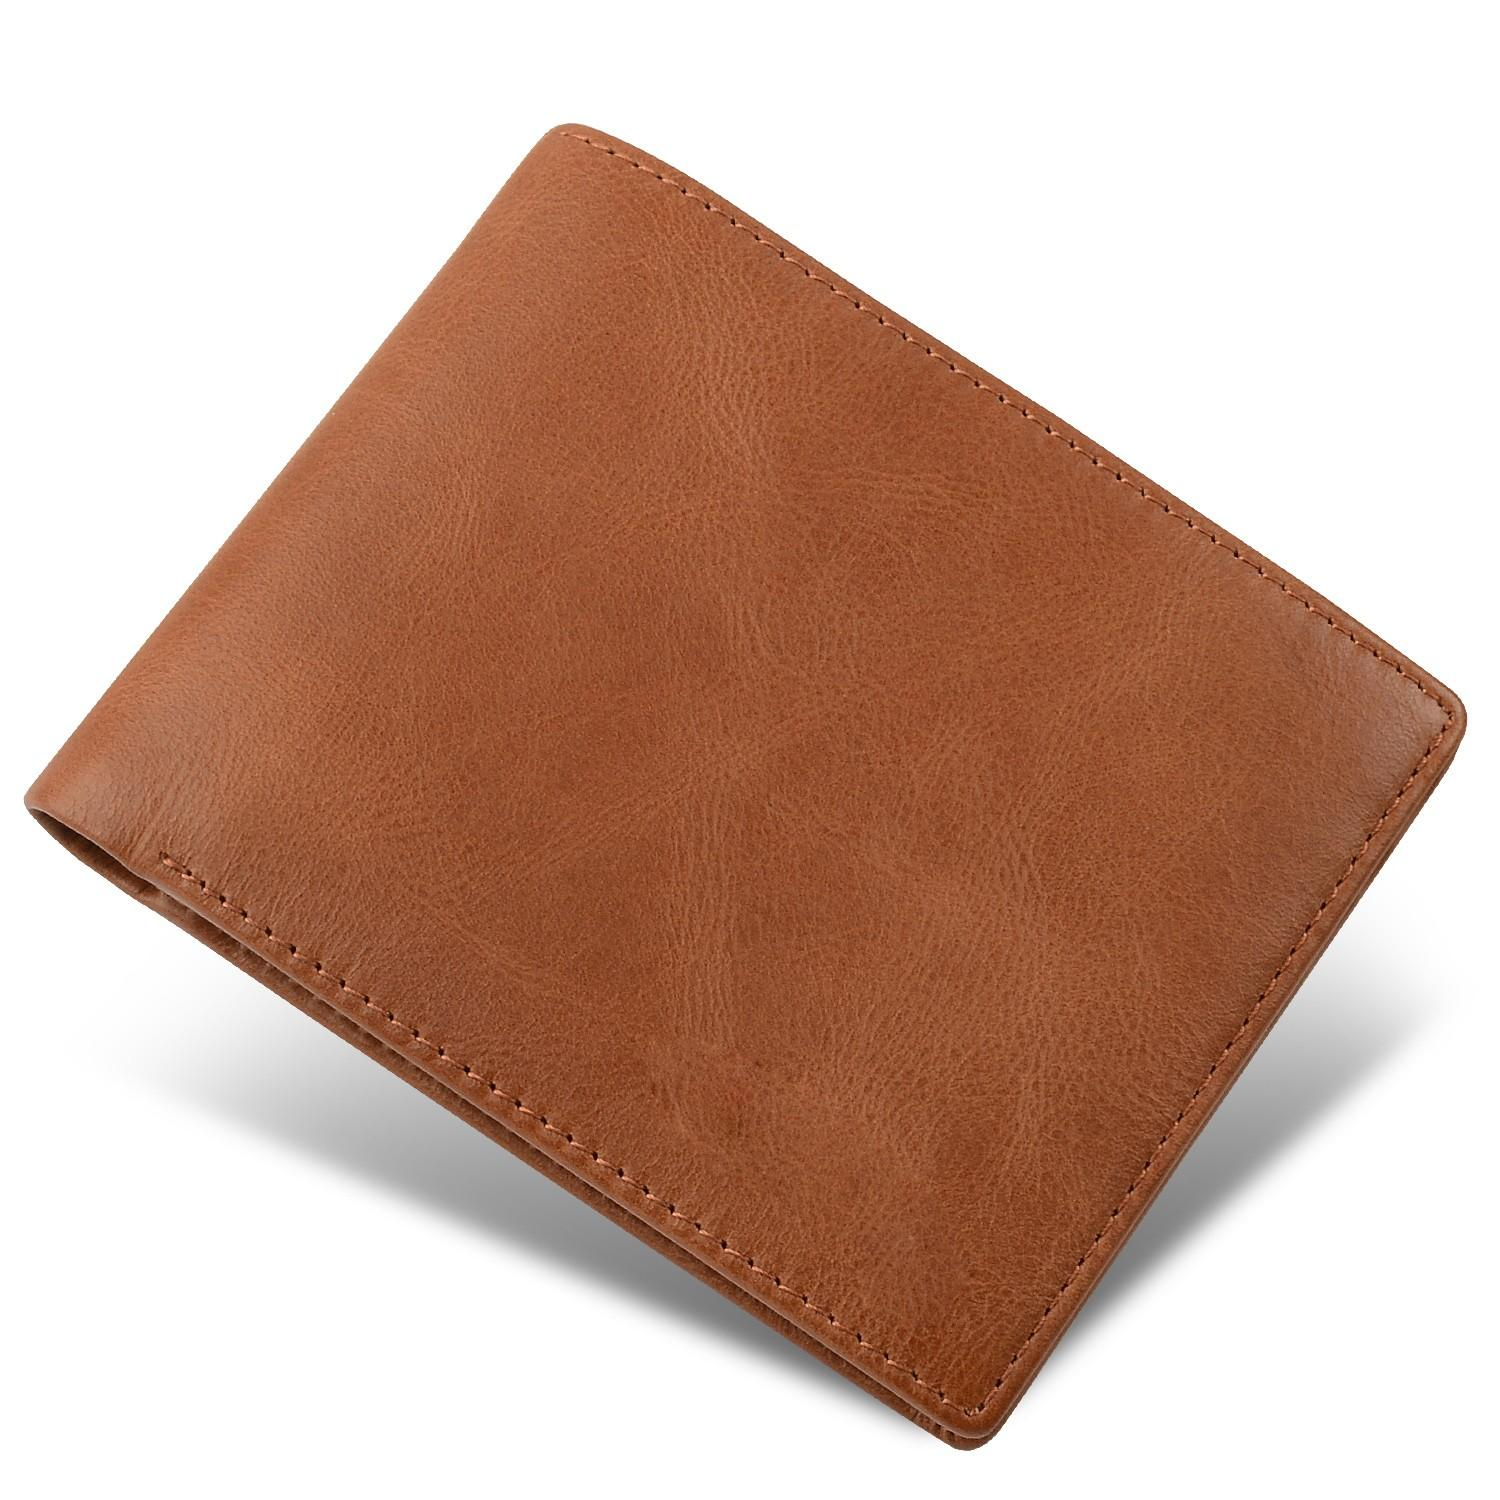 leather travel wallet large capacity for men